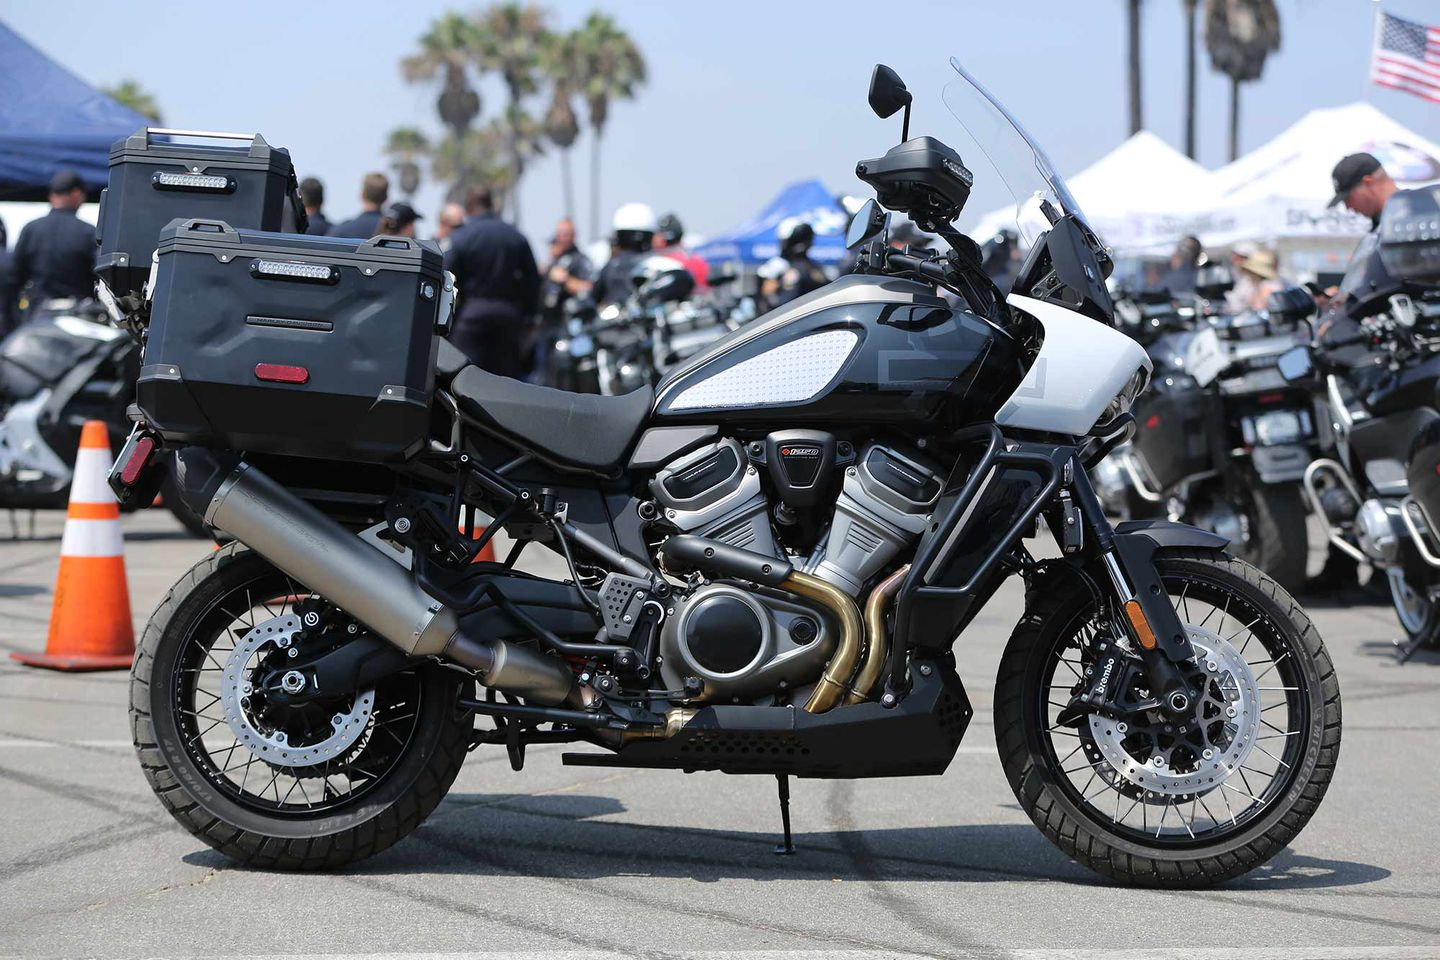 A view of the police edition of the H-D Pan America